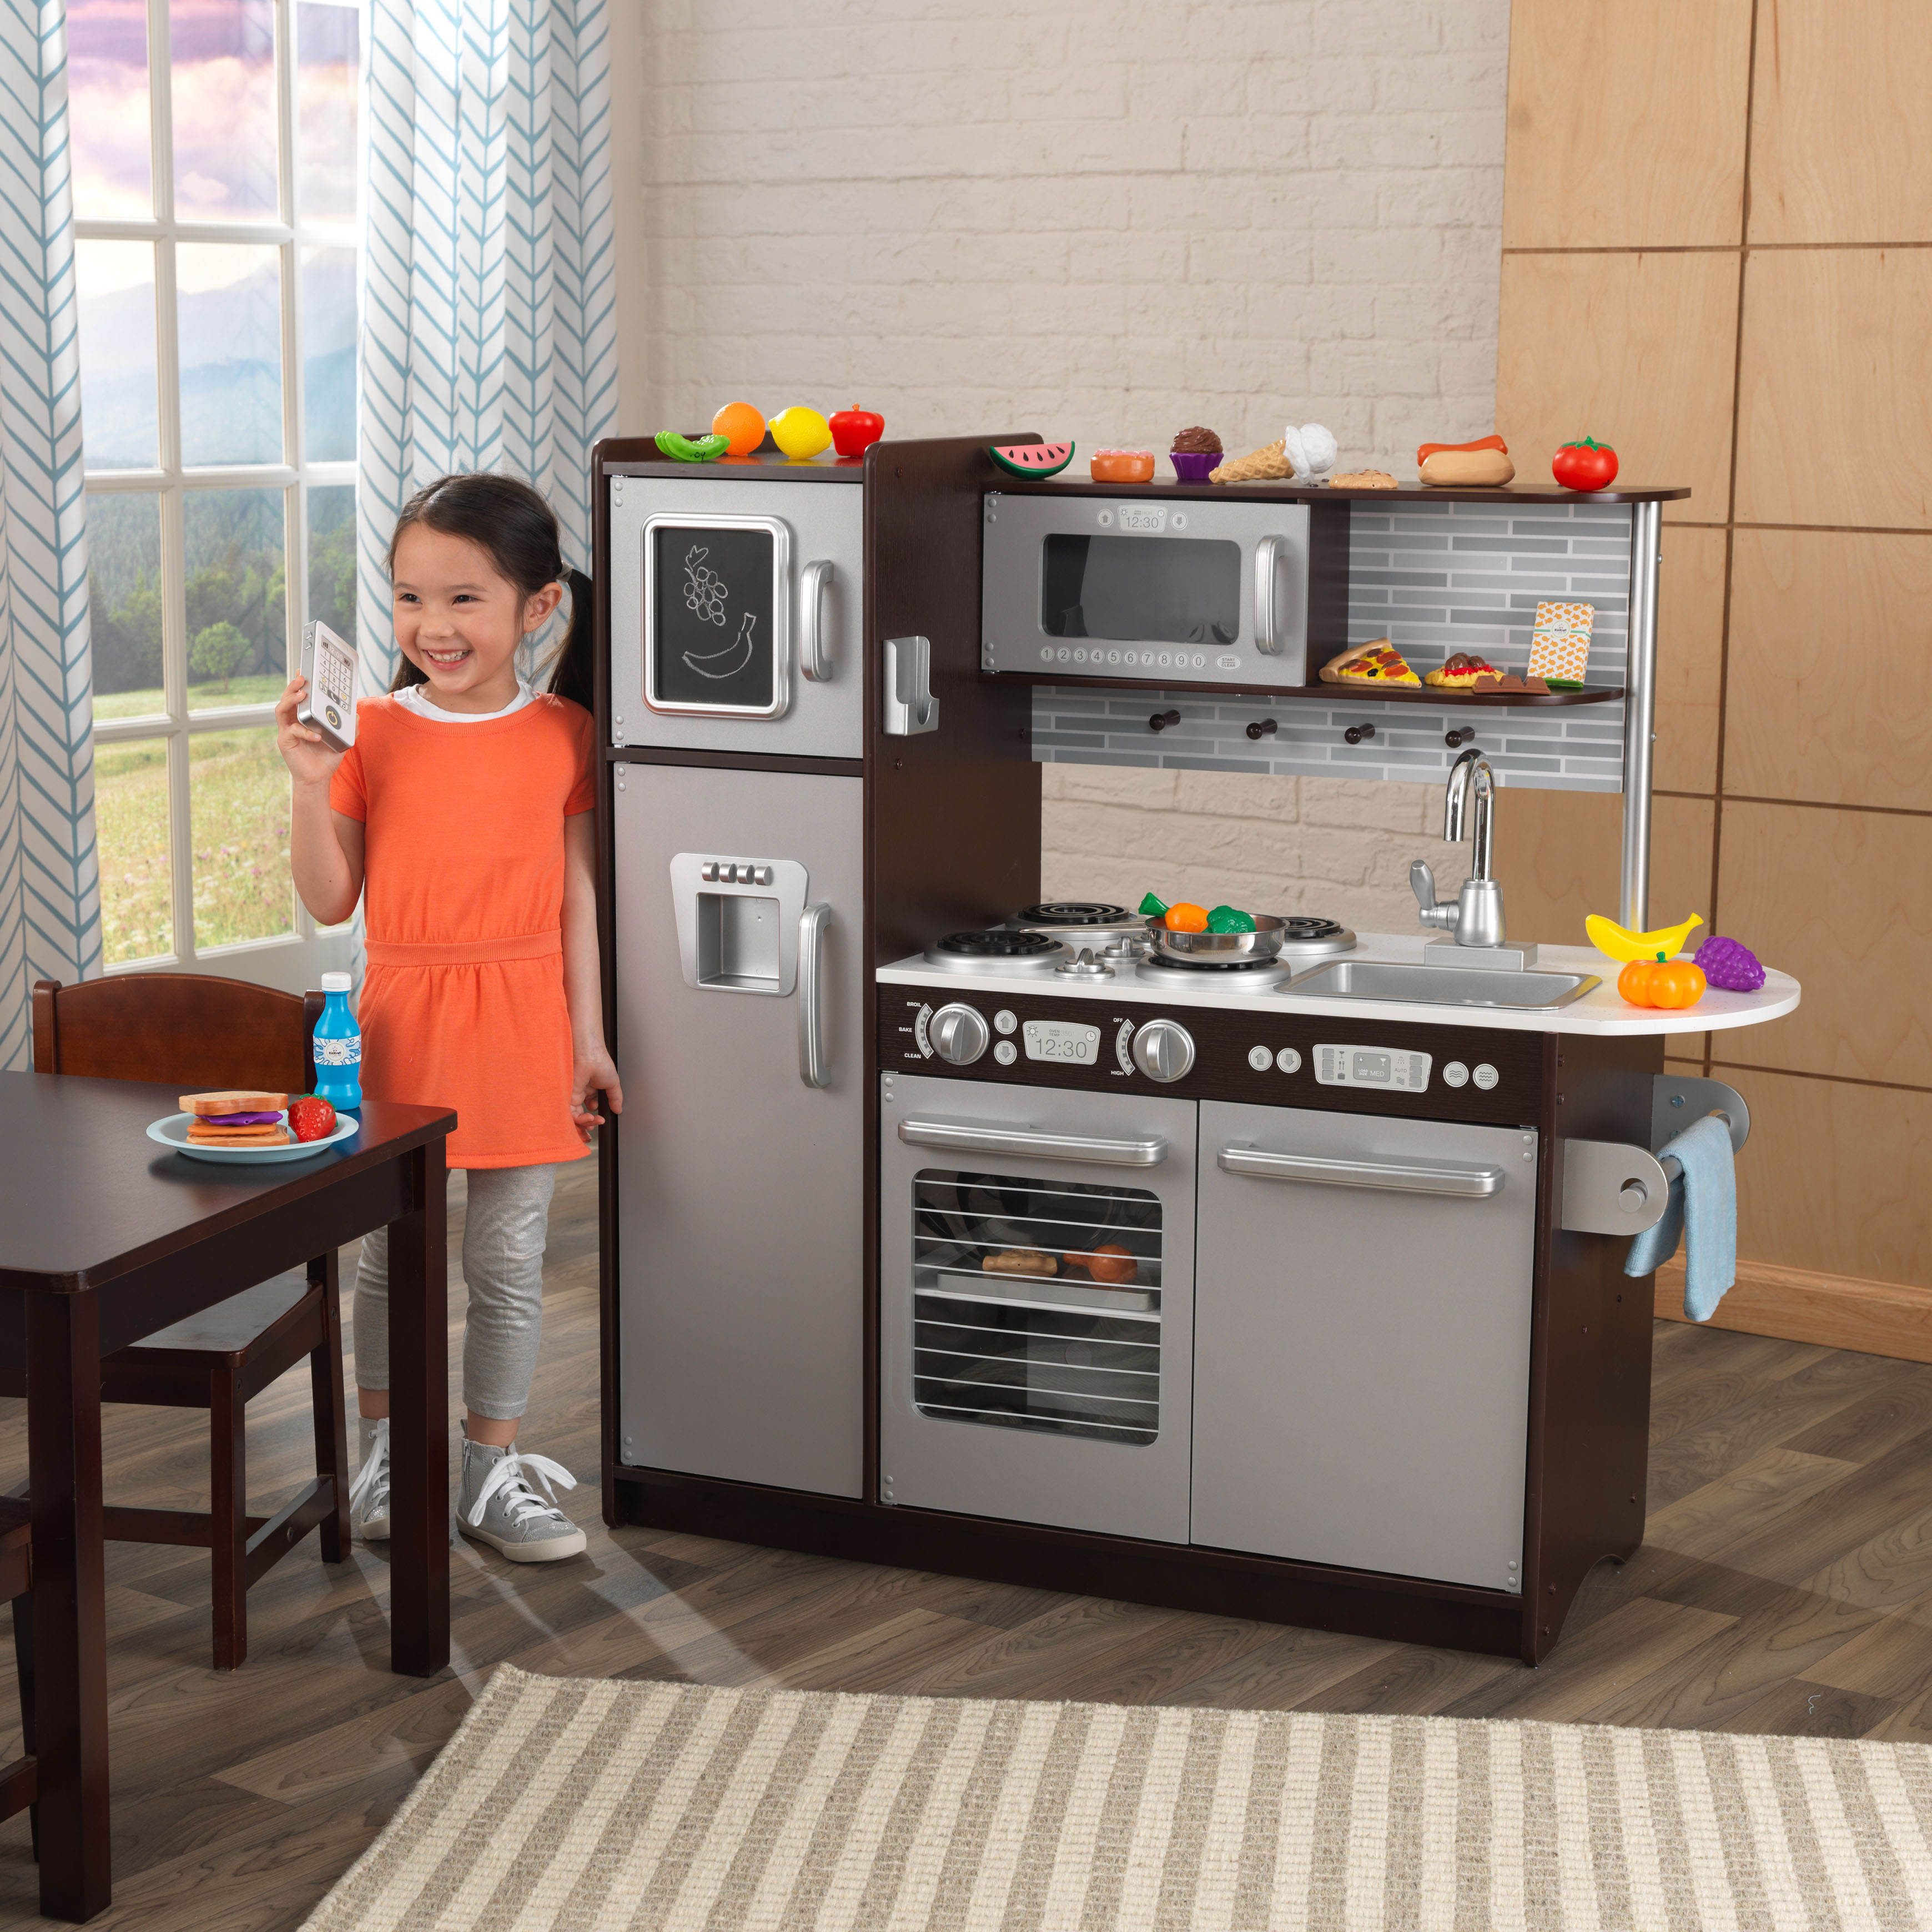 Details about KidKraft Uptown Espresso Kitchen with 30 Piece Play Food